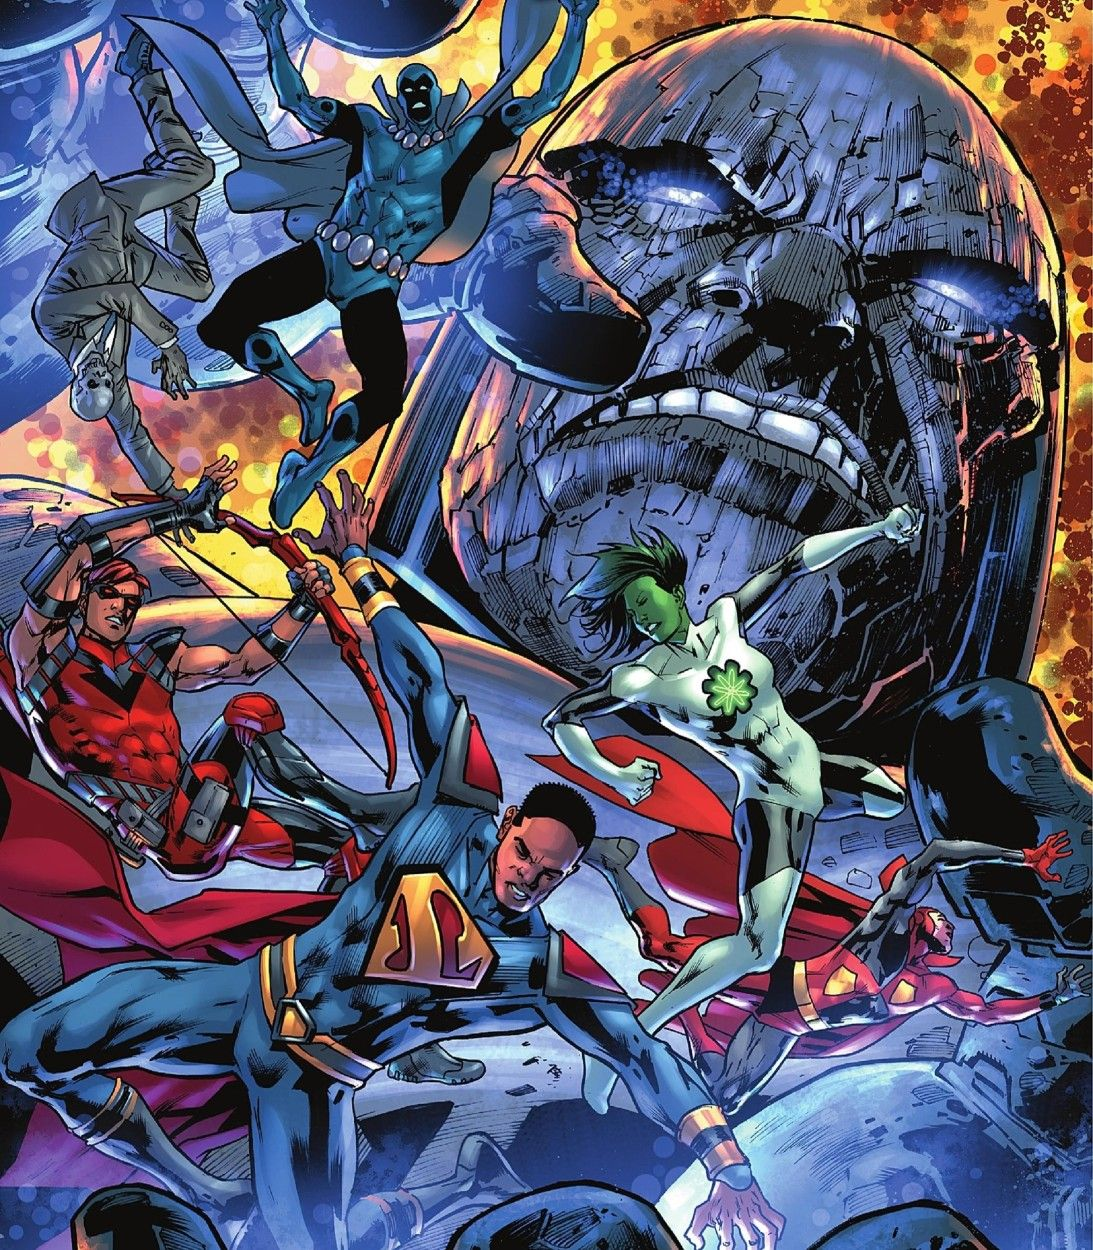 REVIEW: Infinite Frontier: Secret Files #1 Is a Fun Look at the Multiverse